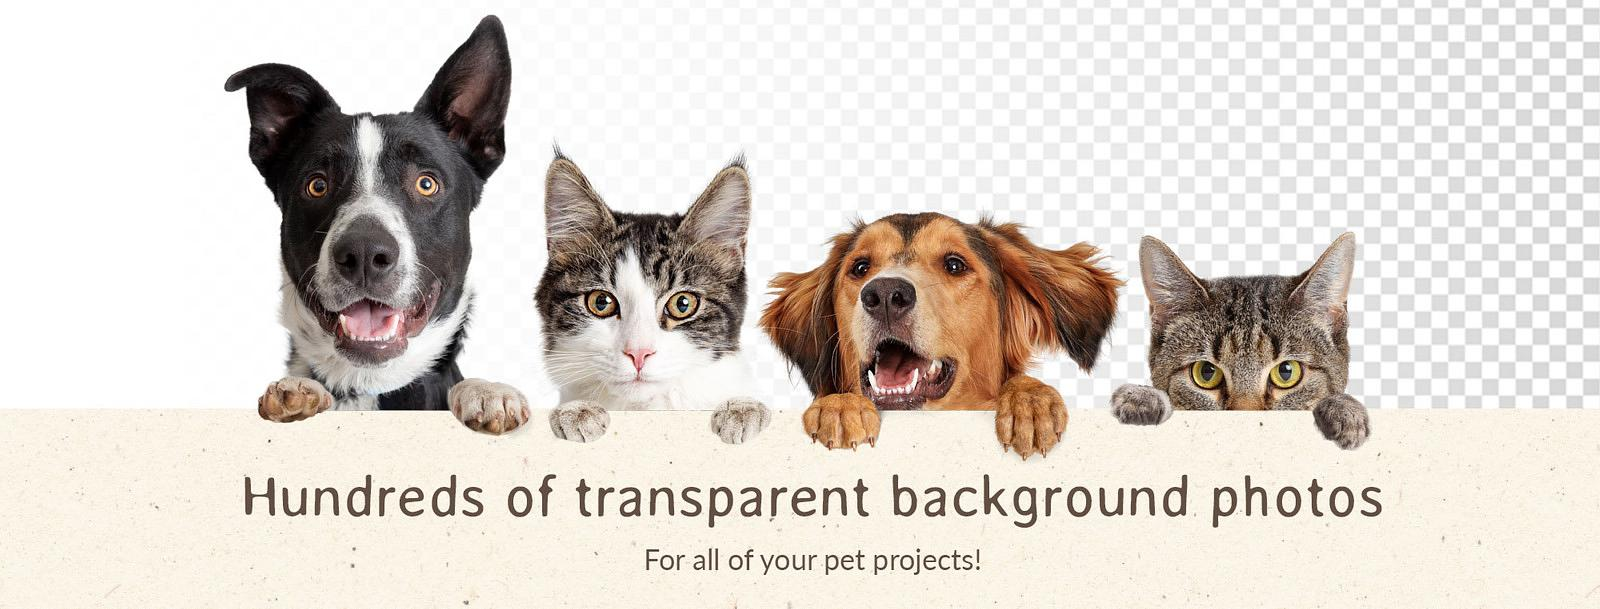 Transparent-Background-Pet-Photos